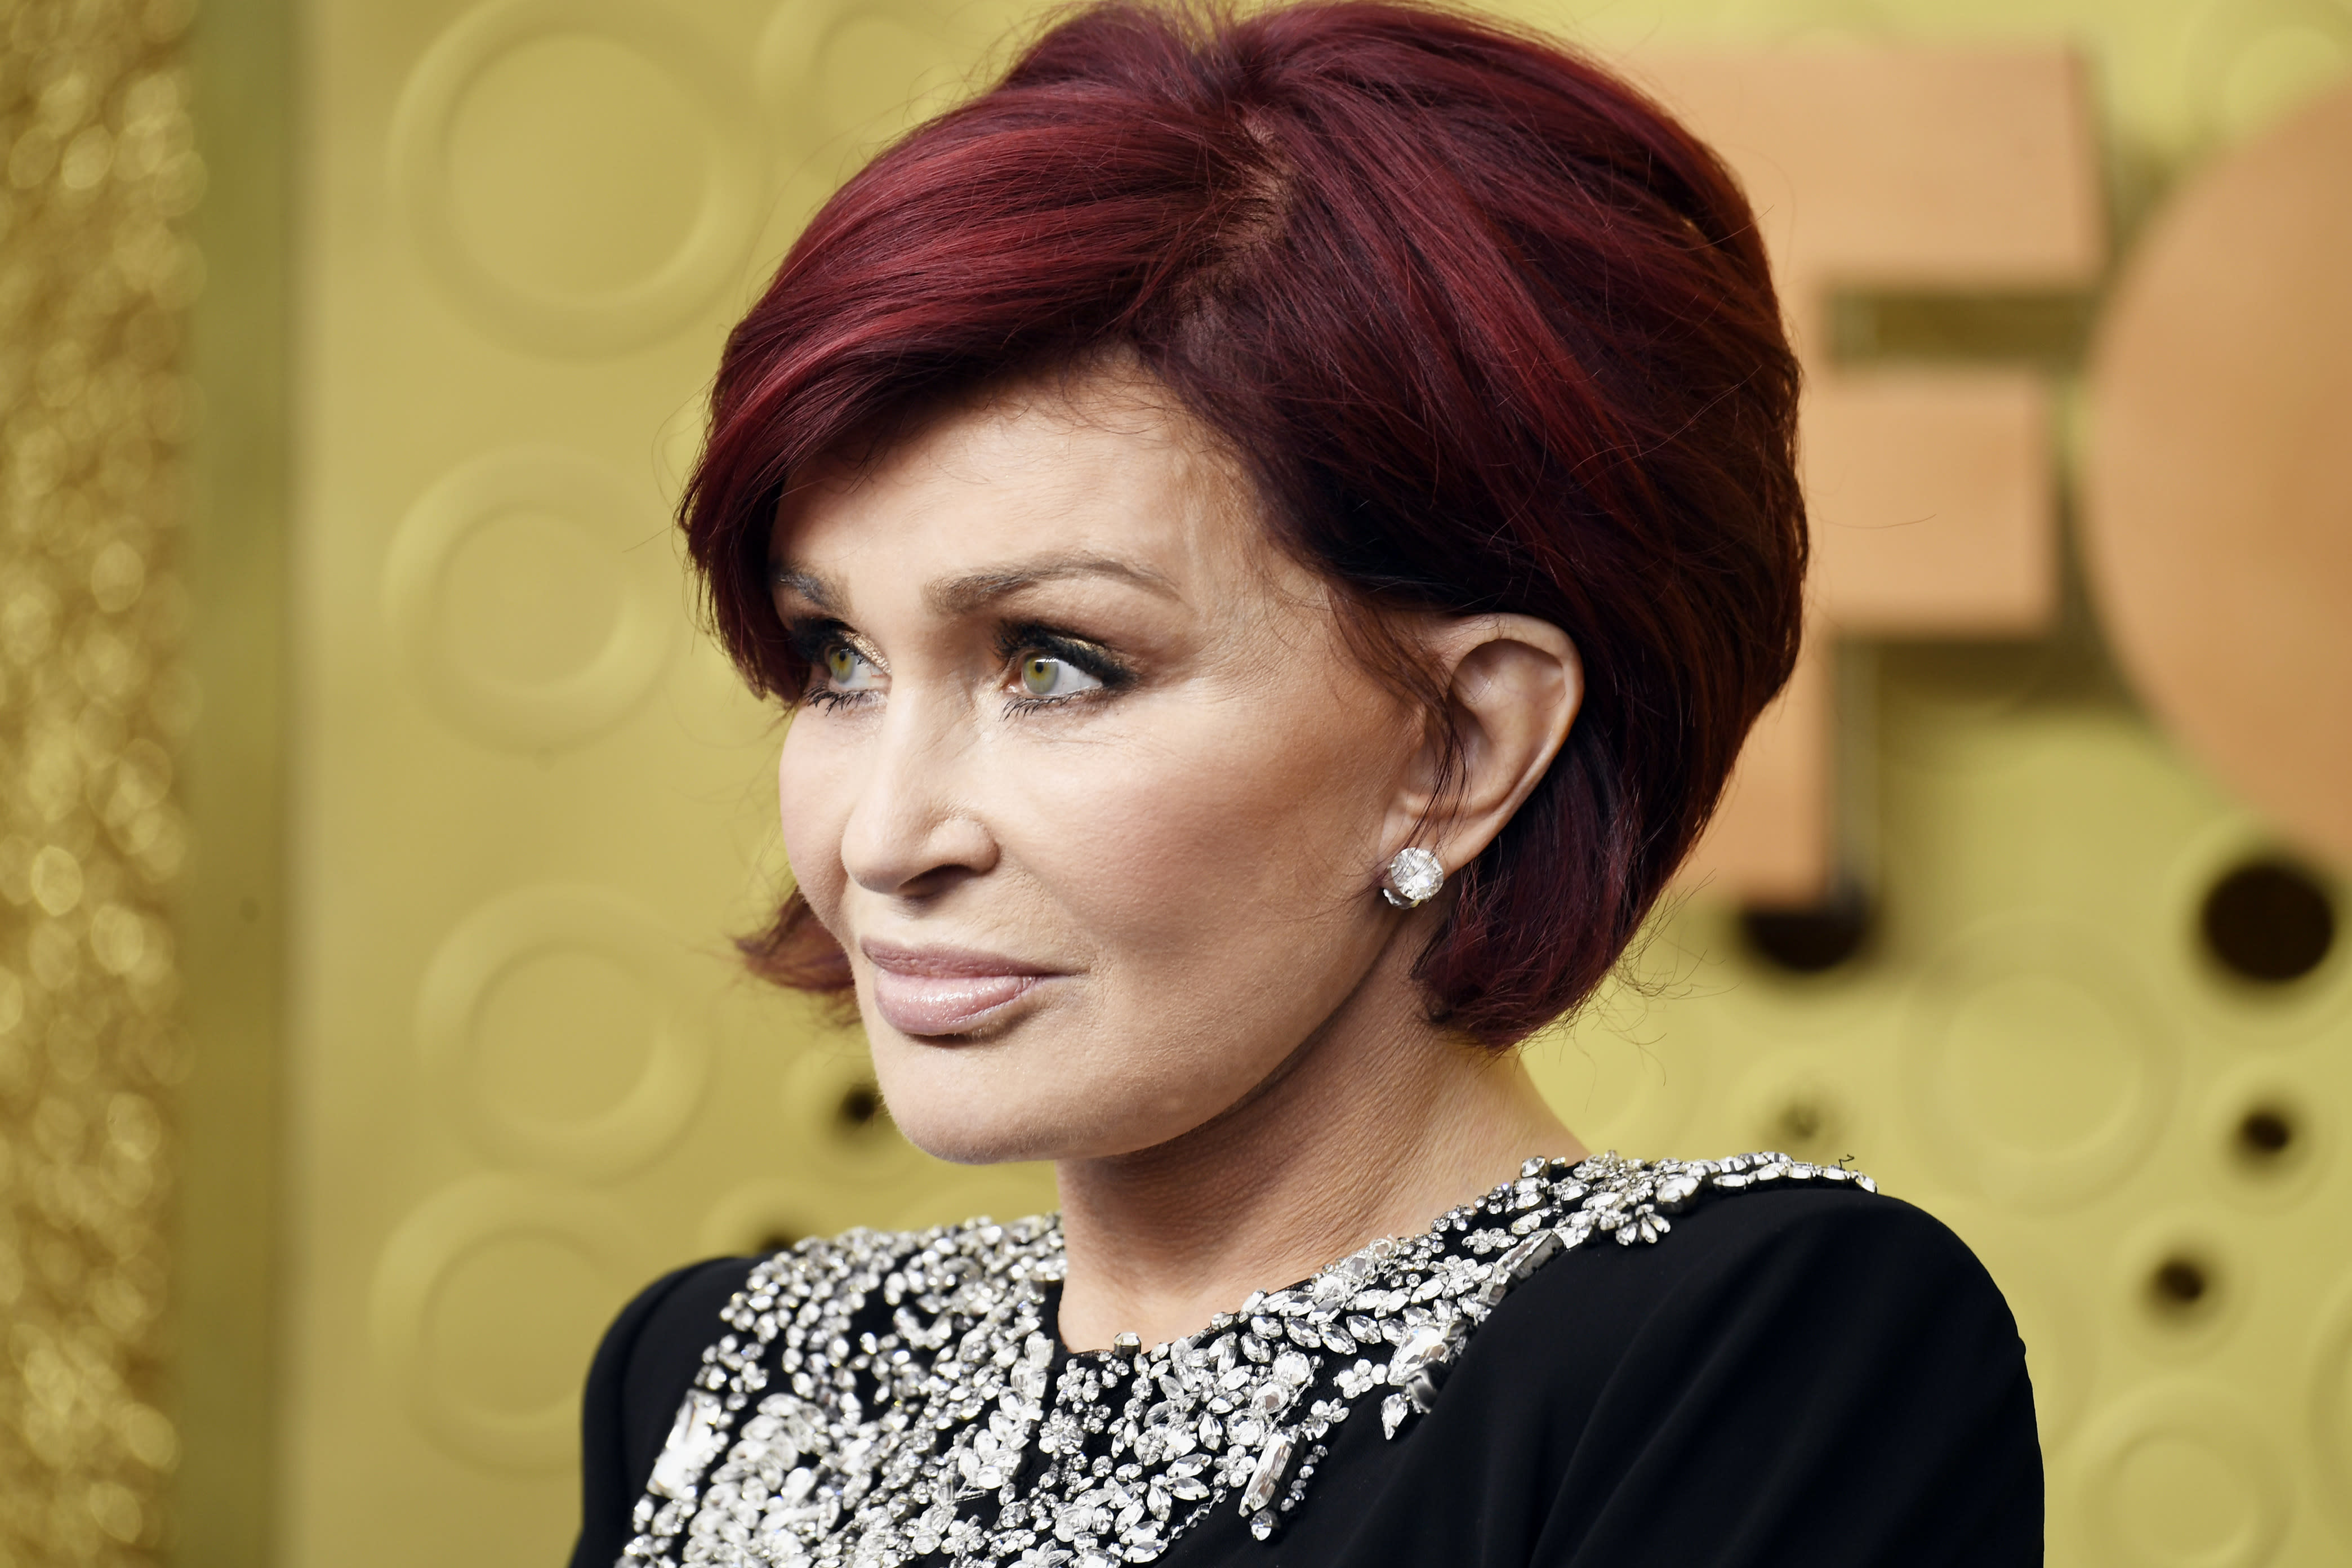 Sharon Osbourne says she can hardly feel her mouth following plastic surgery